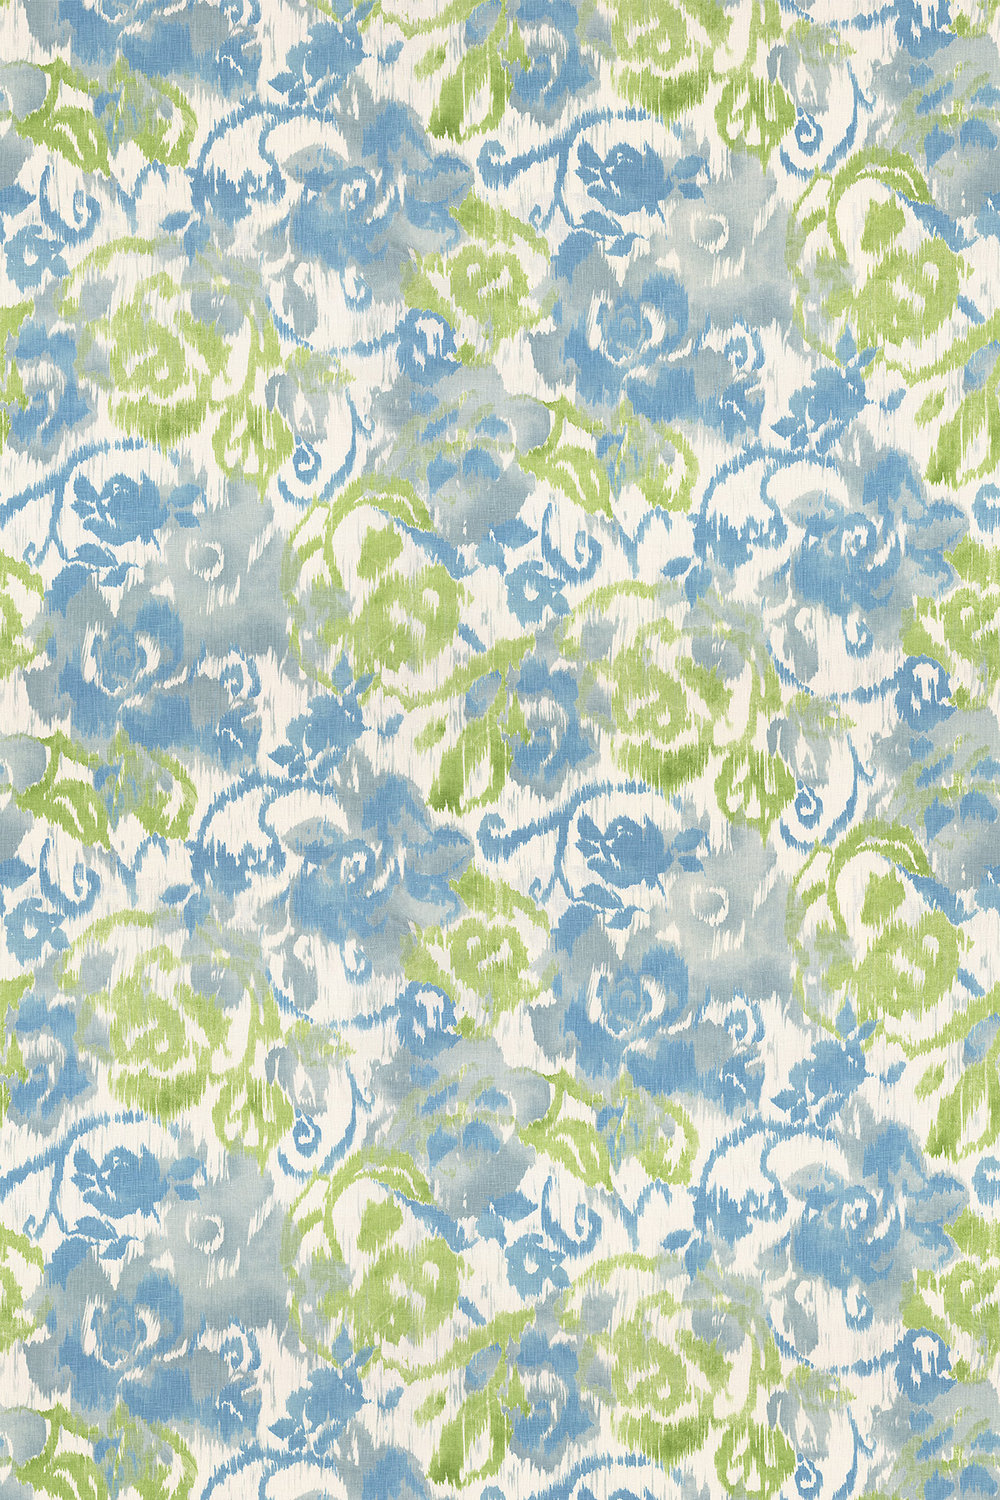 Waterford Floral Fabric - Blue and Green - by Thibaut